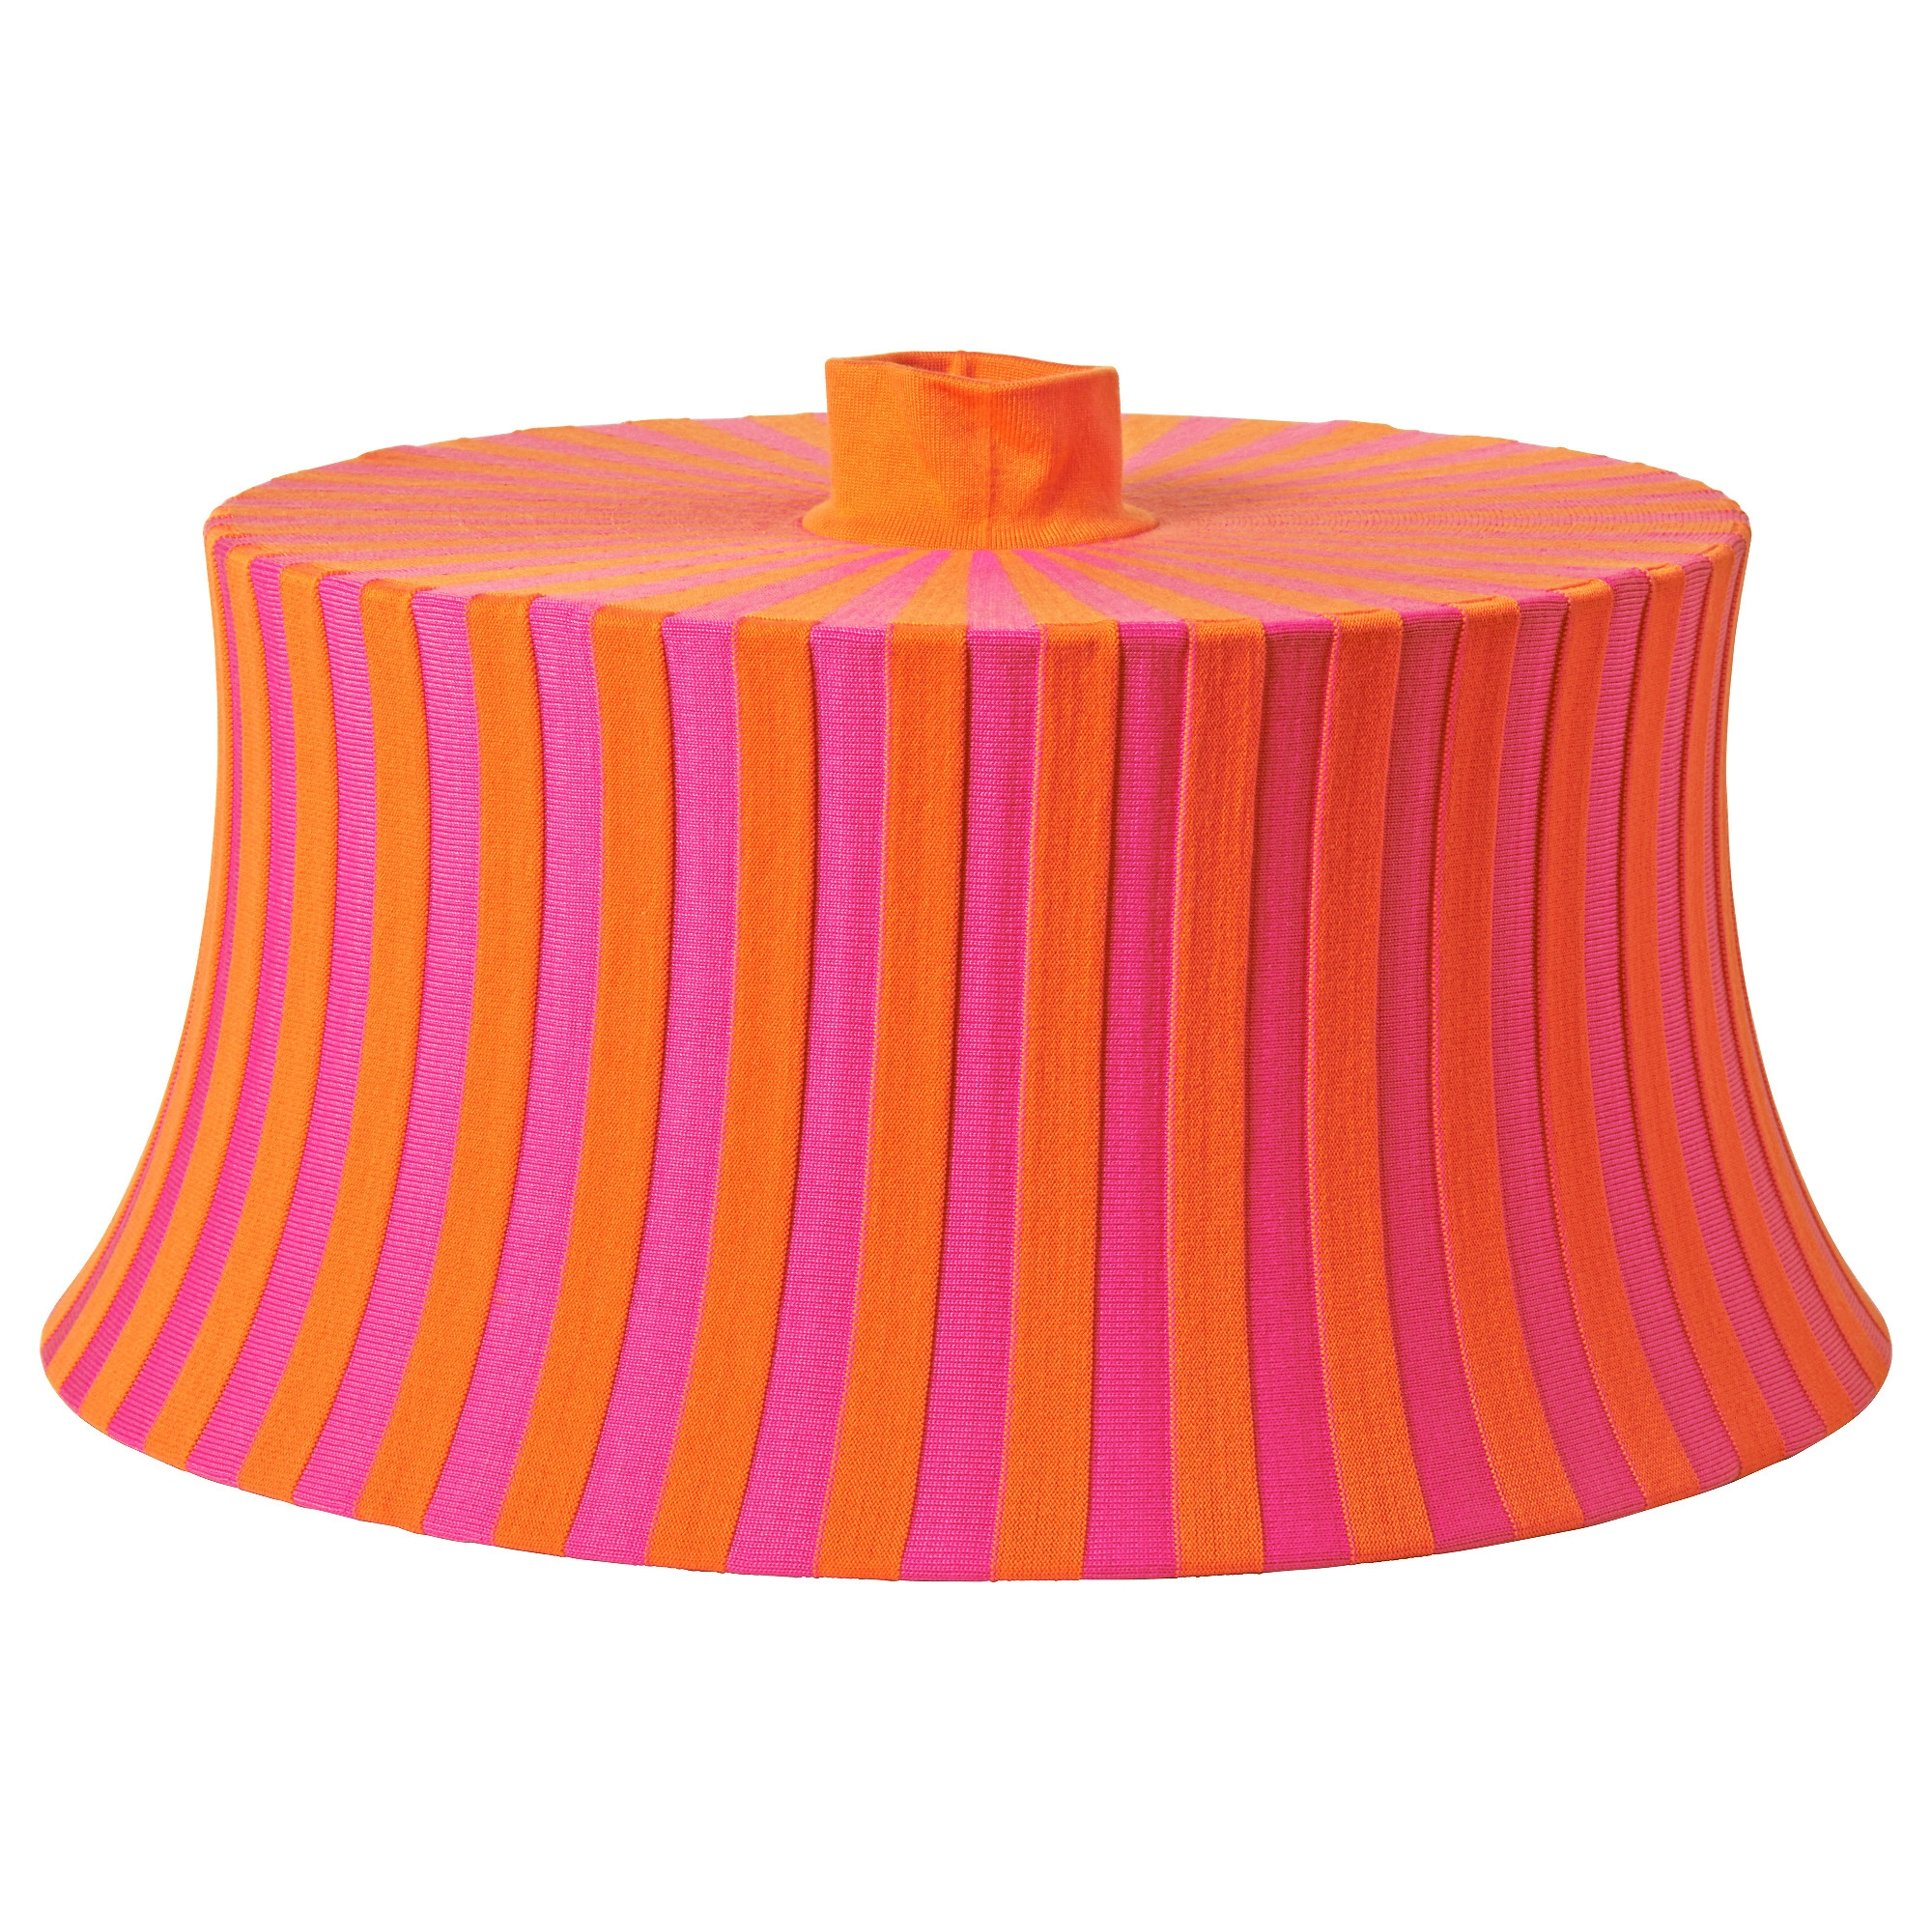 Lamp Shades - IKEA:ÄMTEVIK lamp shade, orange, pink stripe Height: 10